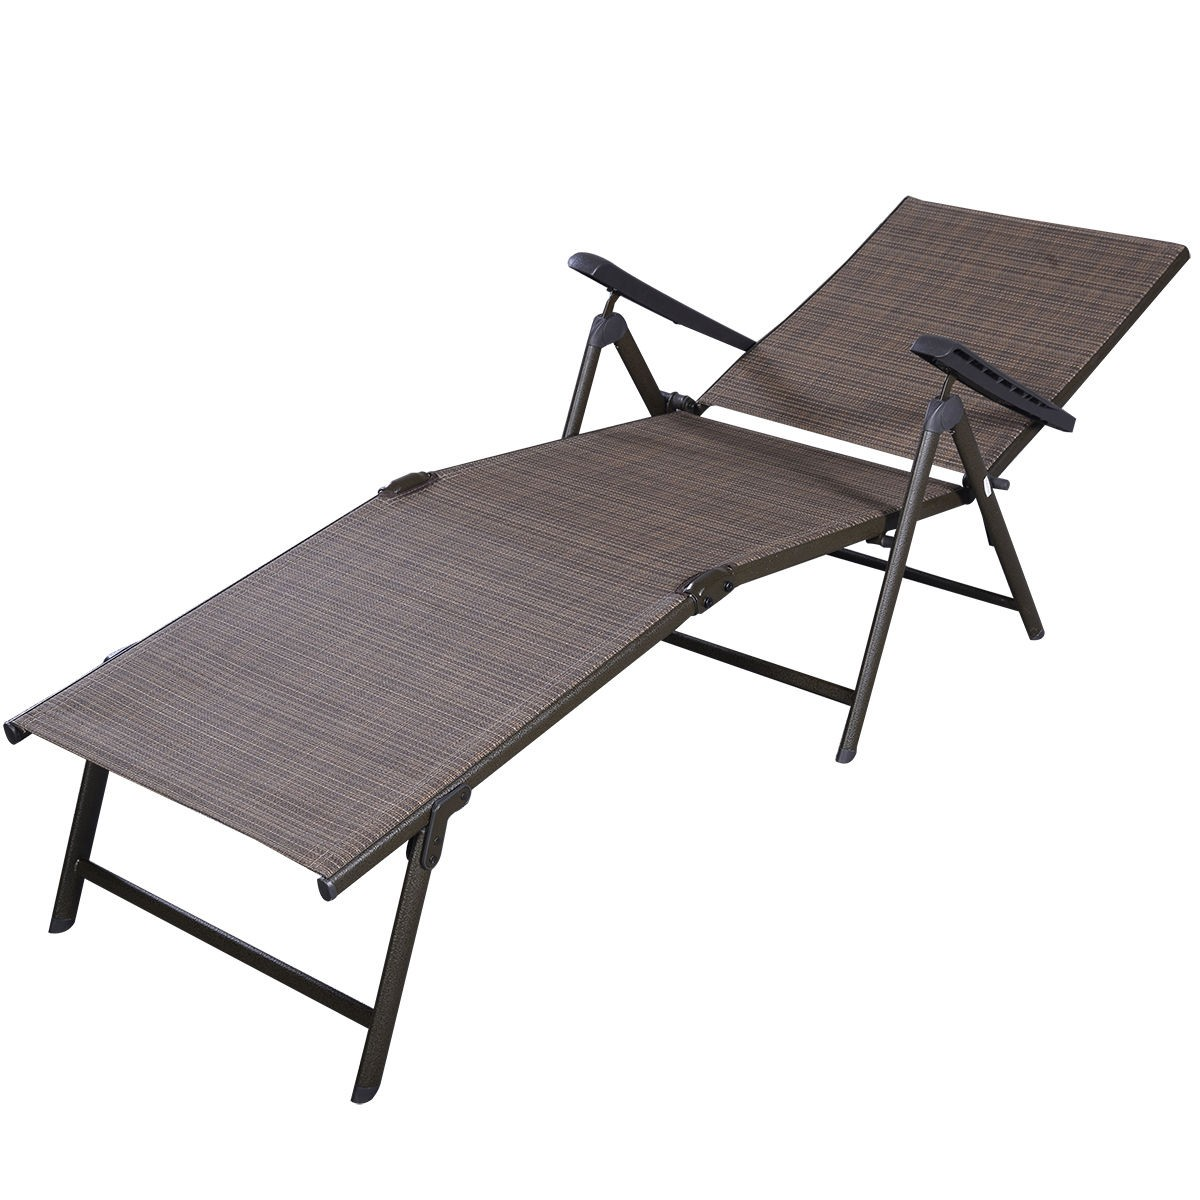 Garden Chair Patio Furniture Textilene Adjustable Pool Chaise Lounge